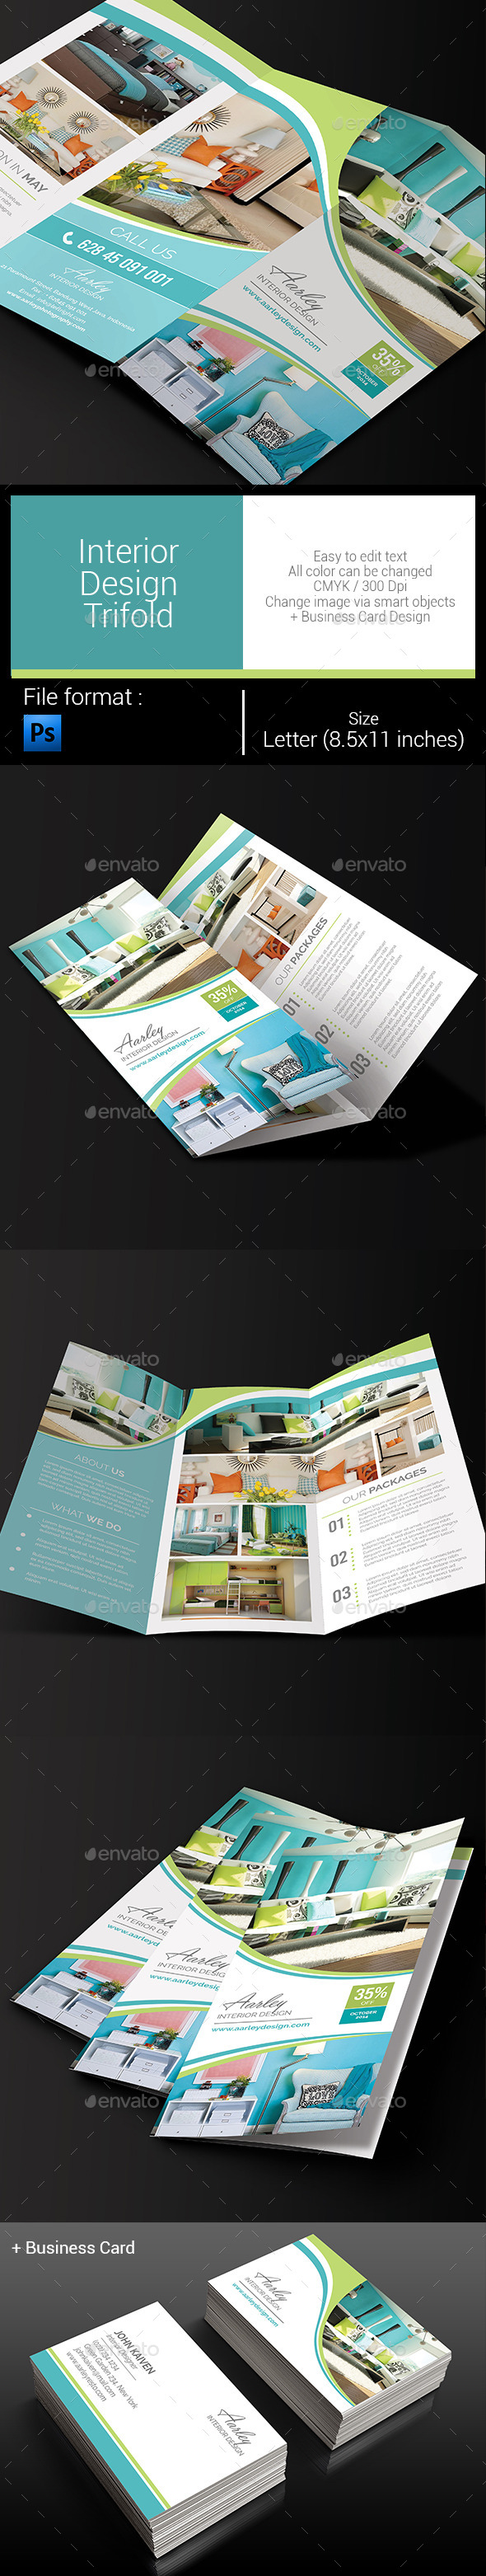 GraphicRiver Interior Design Trifold 10688353